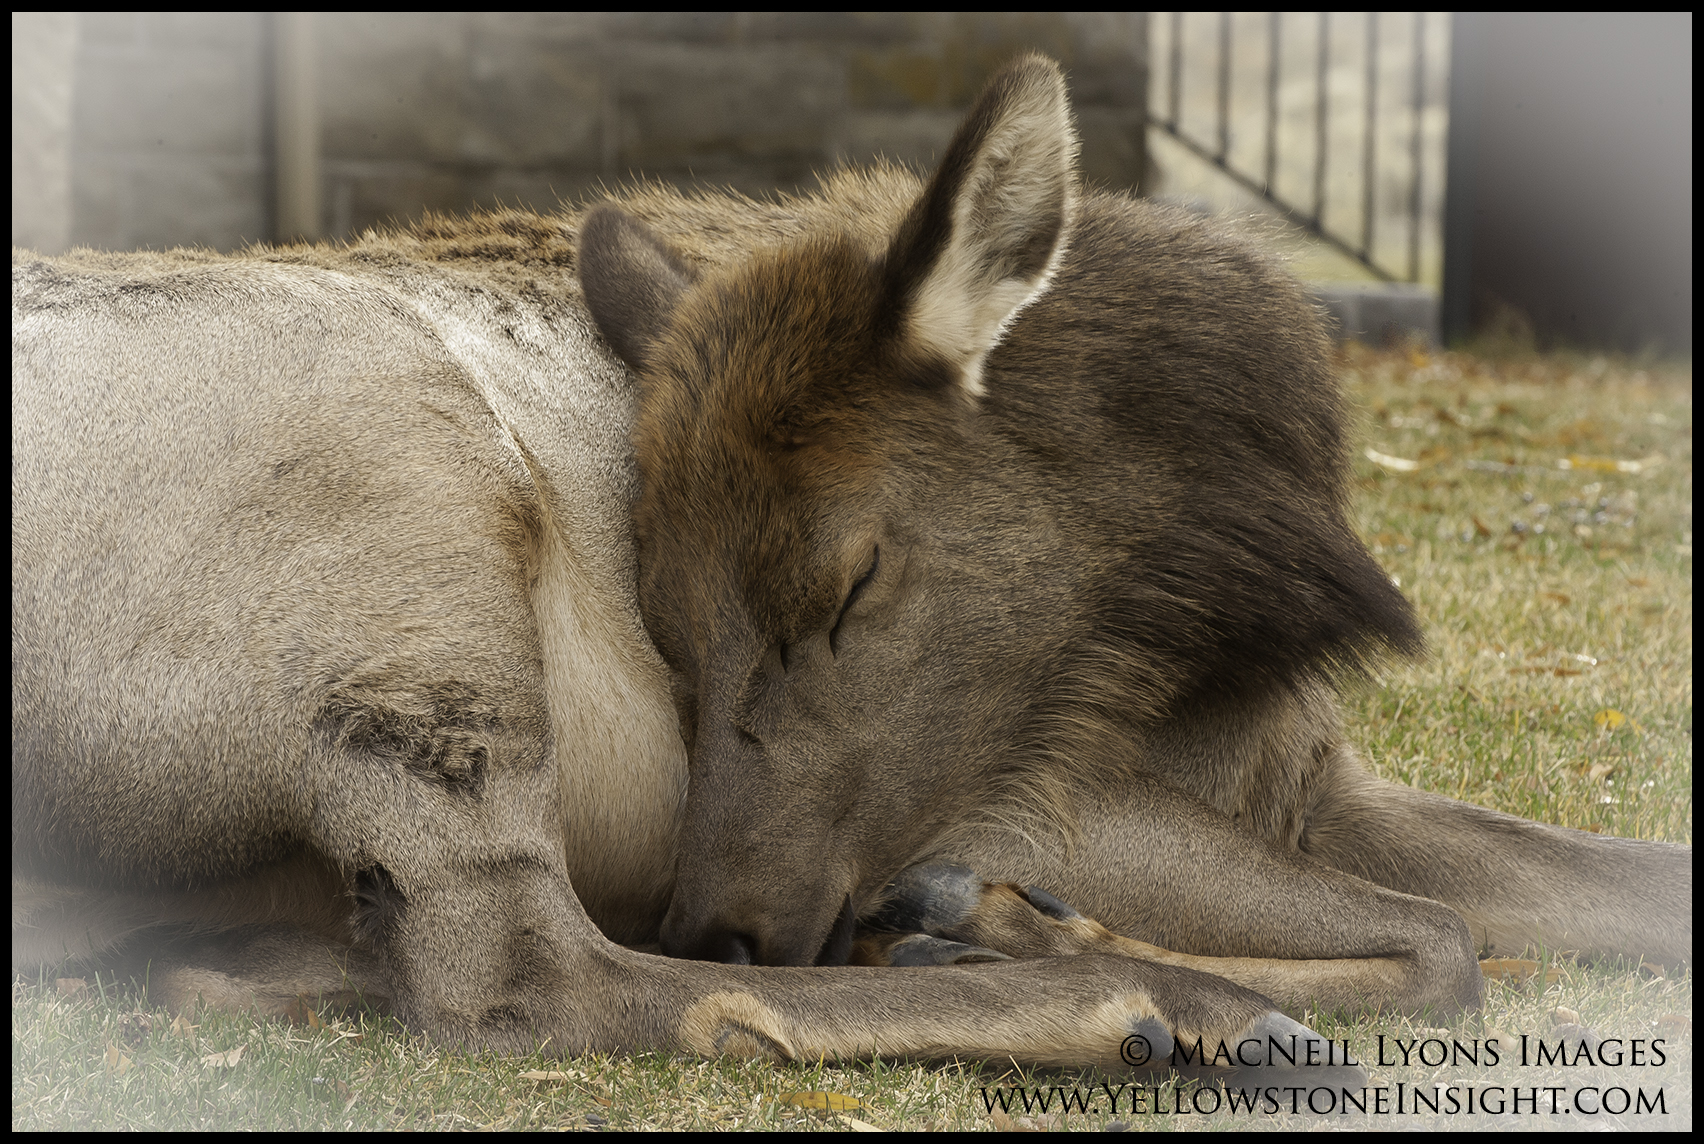 elkcowsleeping_20161030_lyons_10013-copy